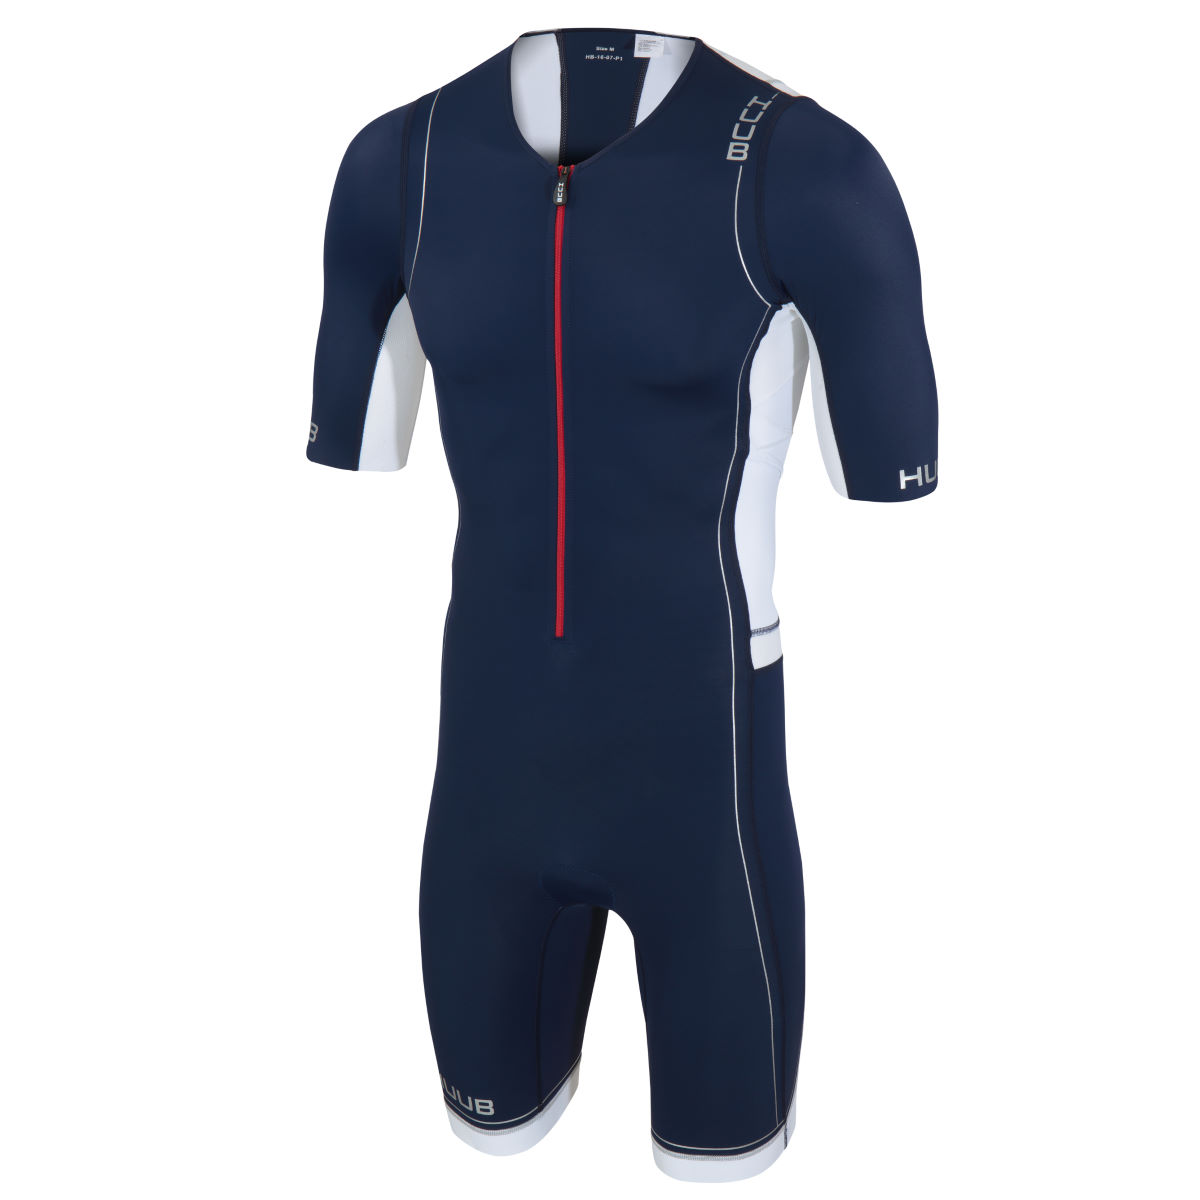 Trifonction HUUB Core Long Course - Extra Small Marine/Blanc Trifonctions